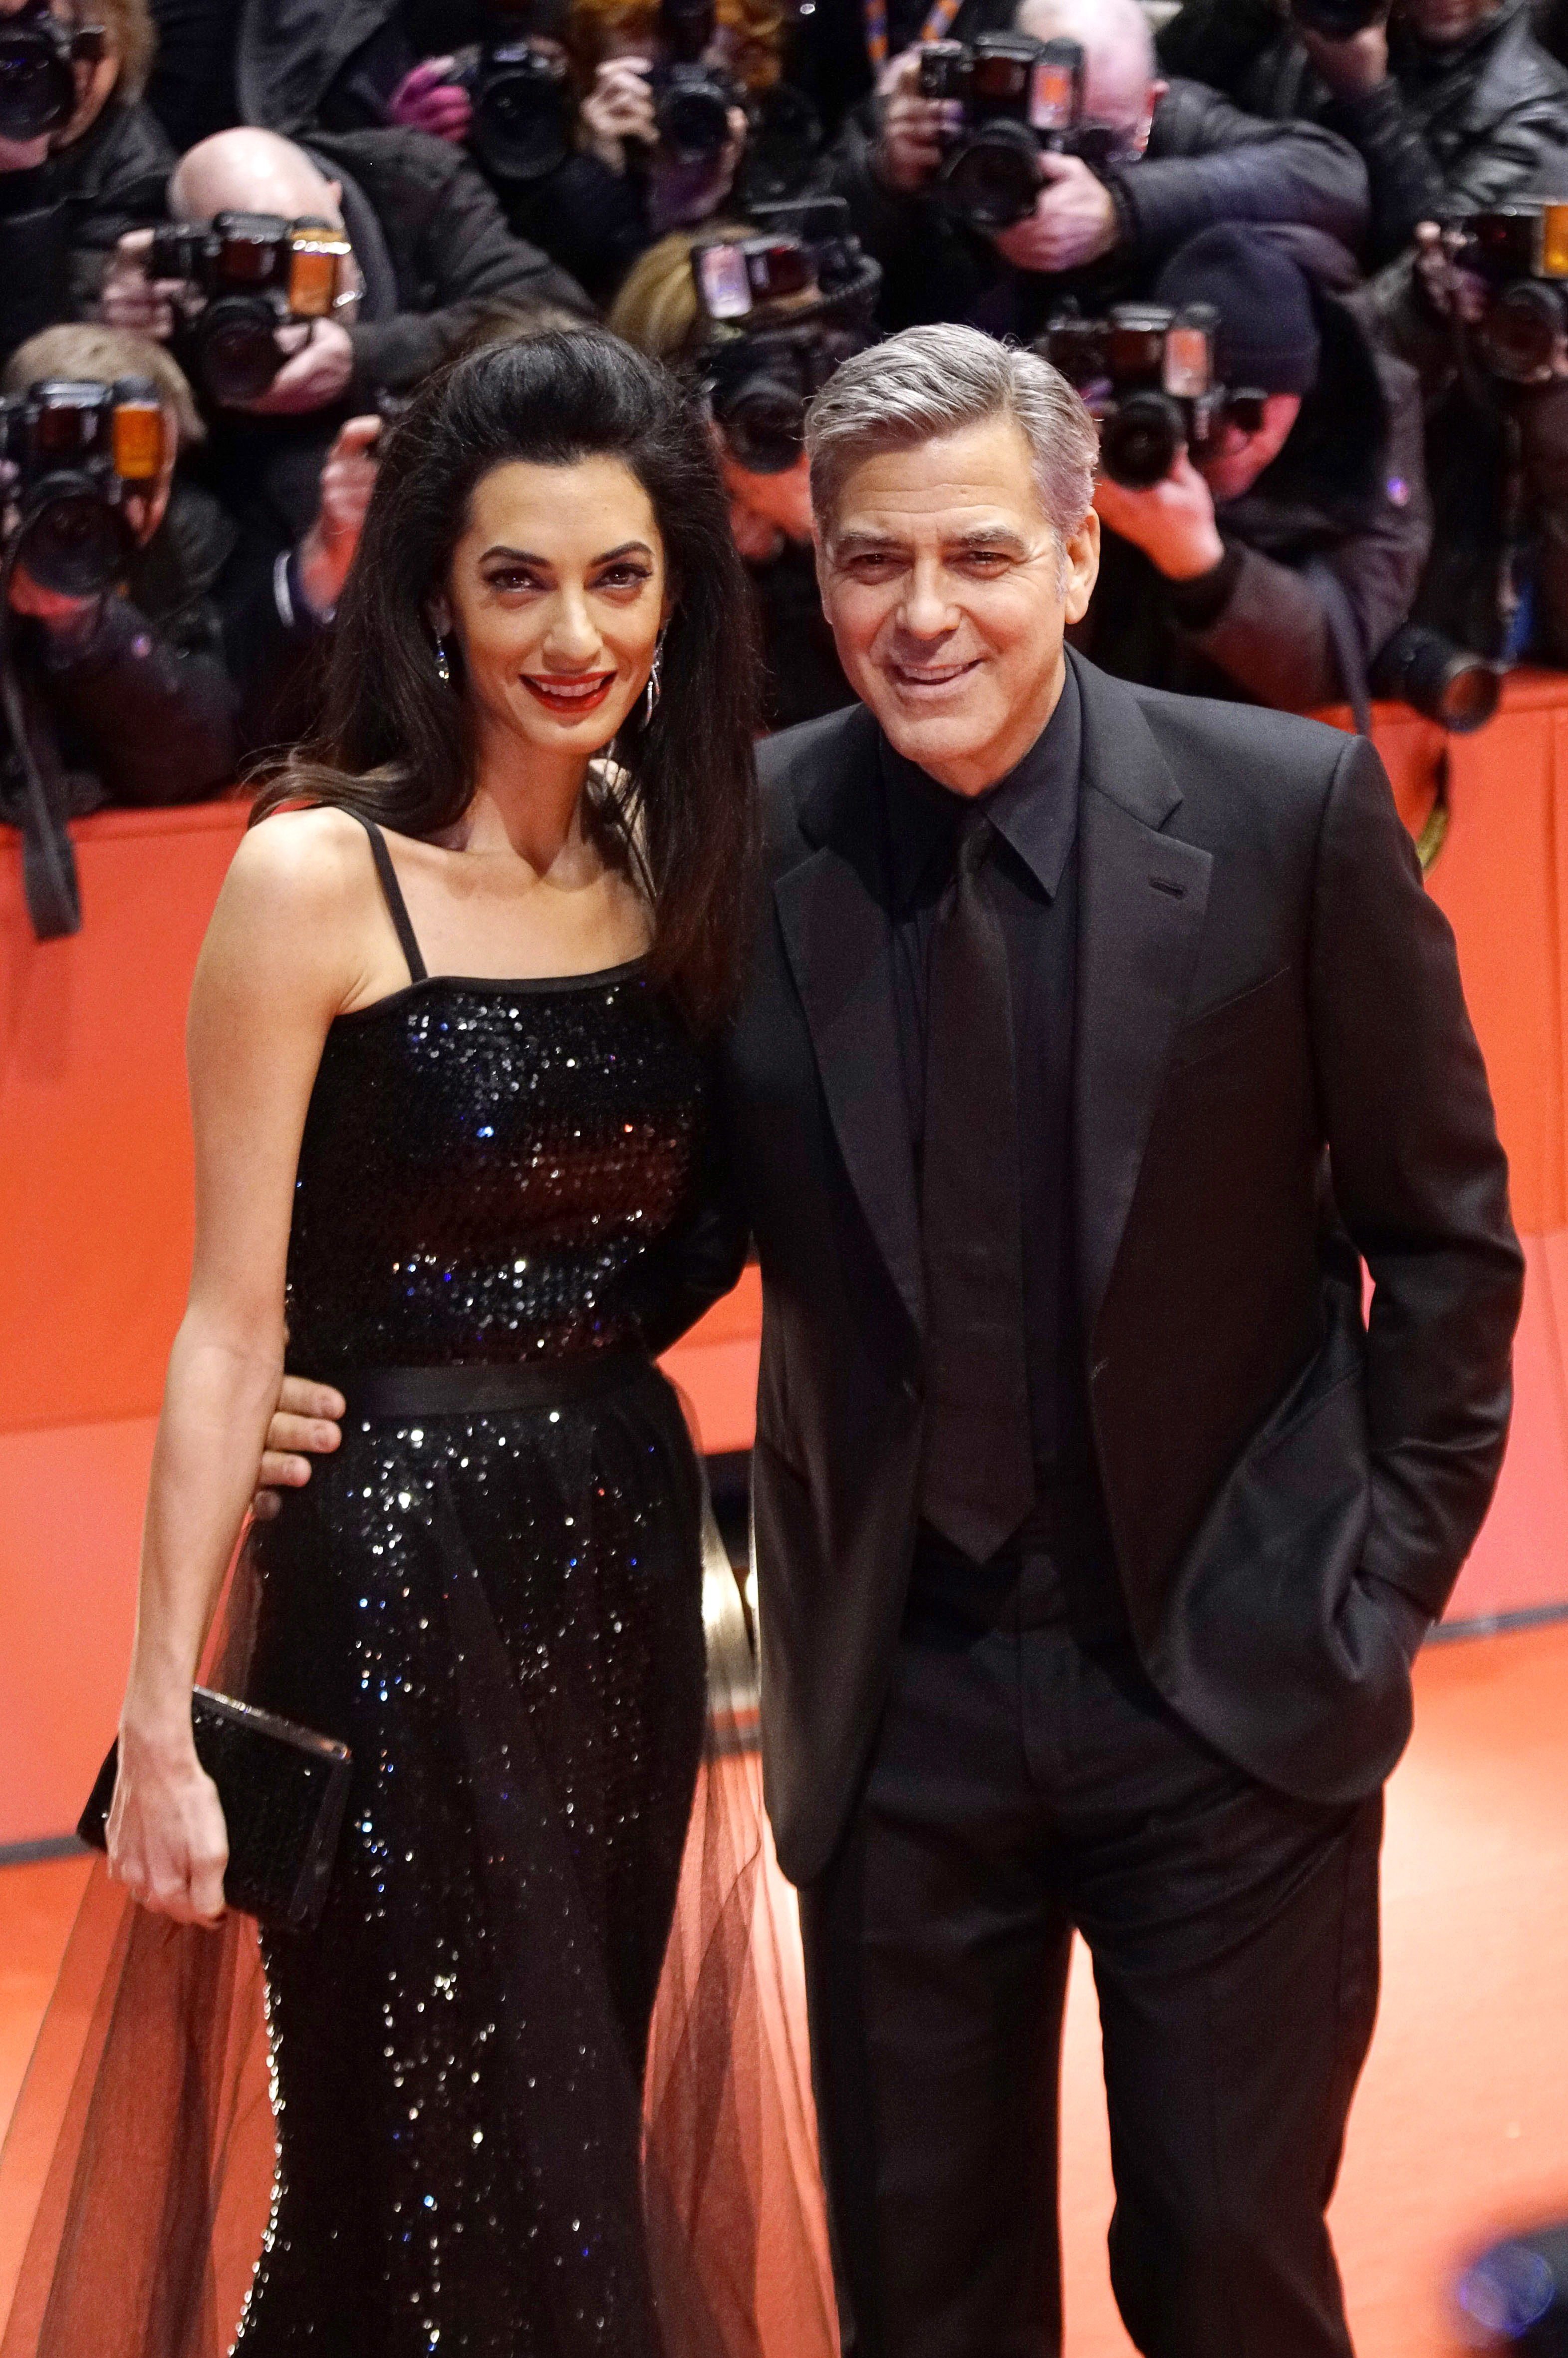 George Clooney and Amal want you to meet Hillary Clinton at their house